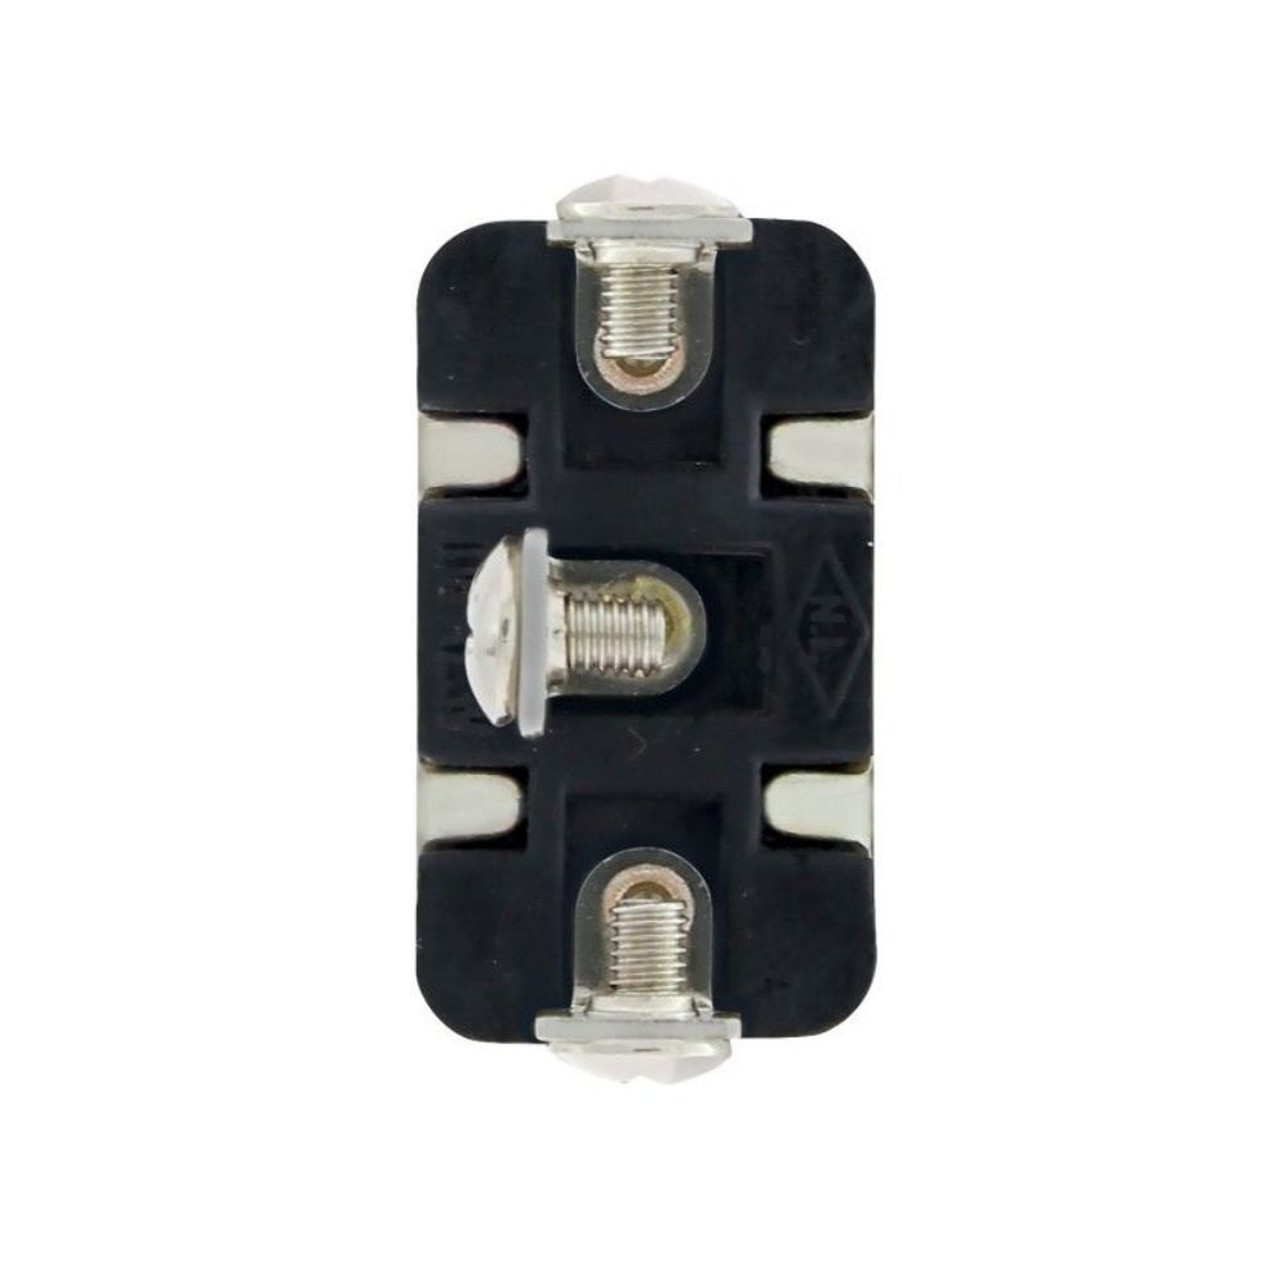 3 Pin, 10 Amp - 12 Volts D.C. On-Off-On Metal Toggle Switch w/ 3 Screw Terminals